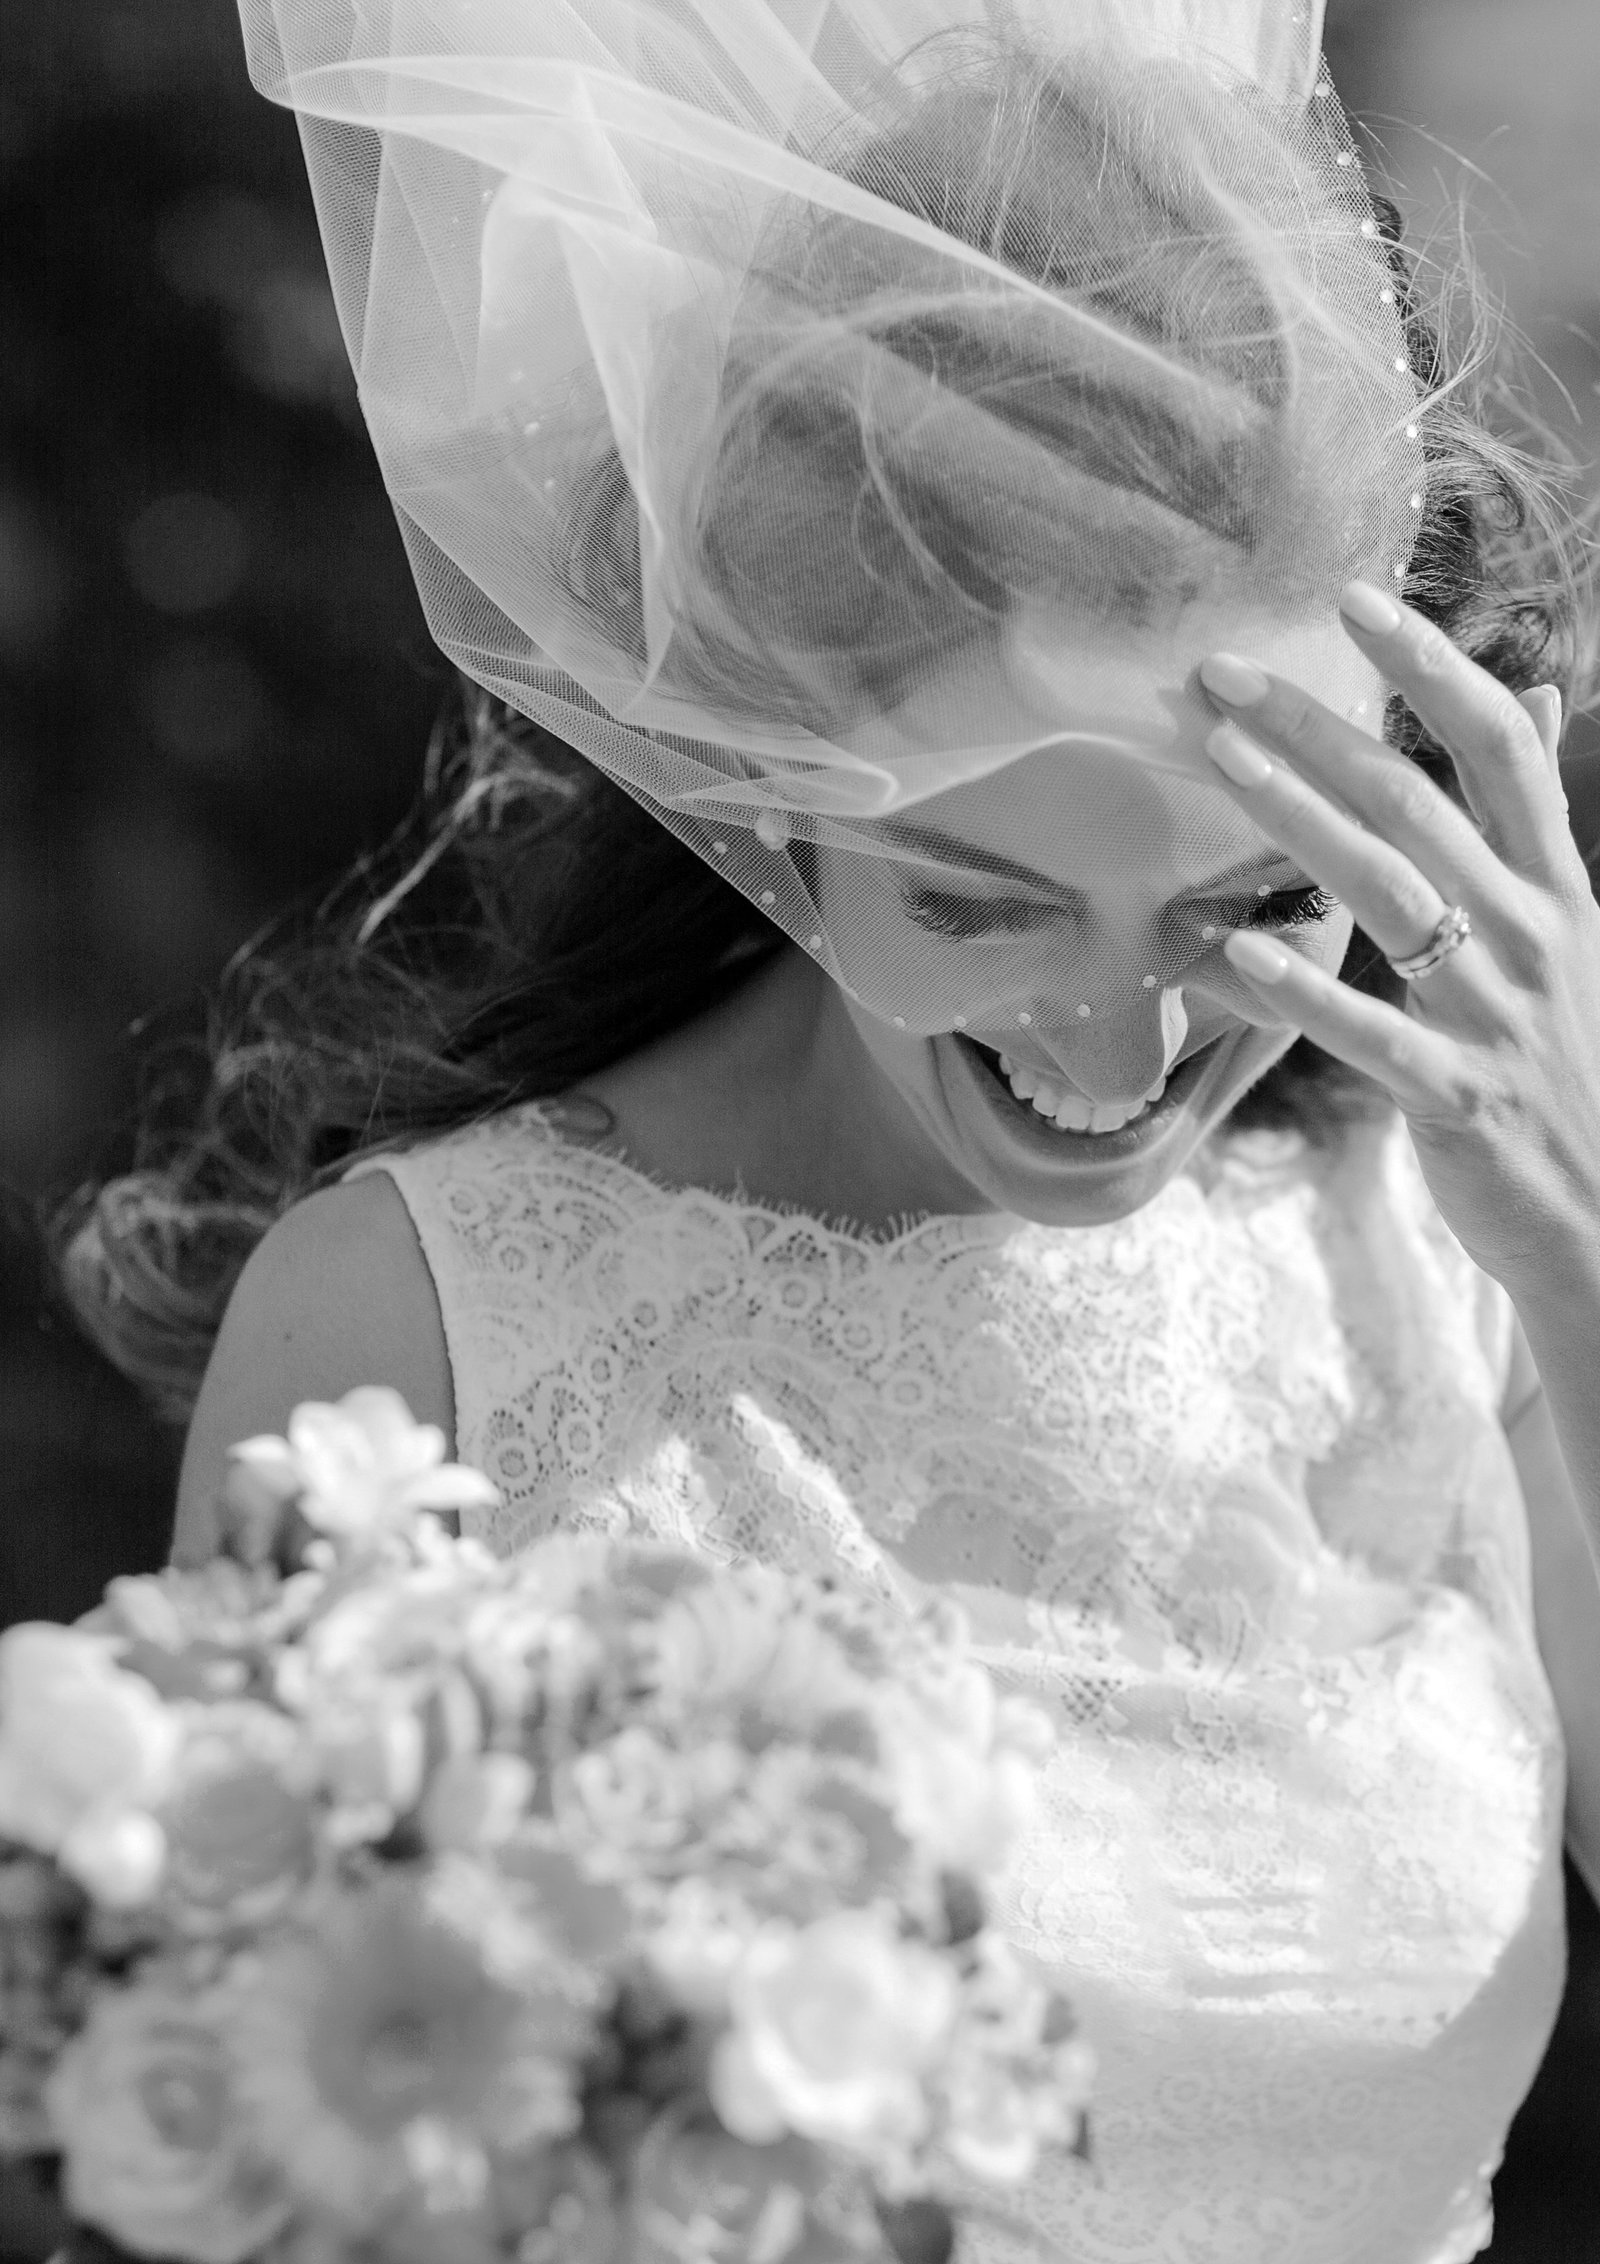 Black and white portrait wedding photo of bride laughing as her veil blows up in the wind on her wedding day